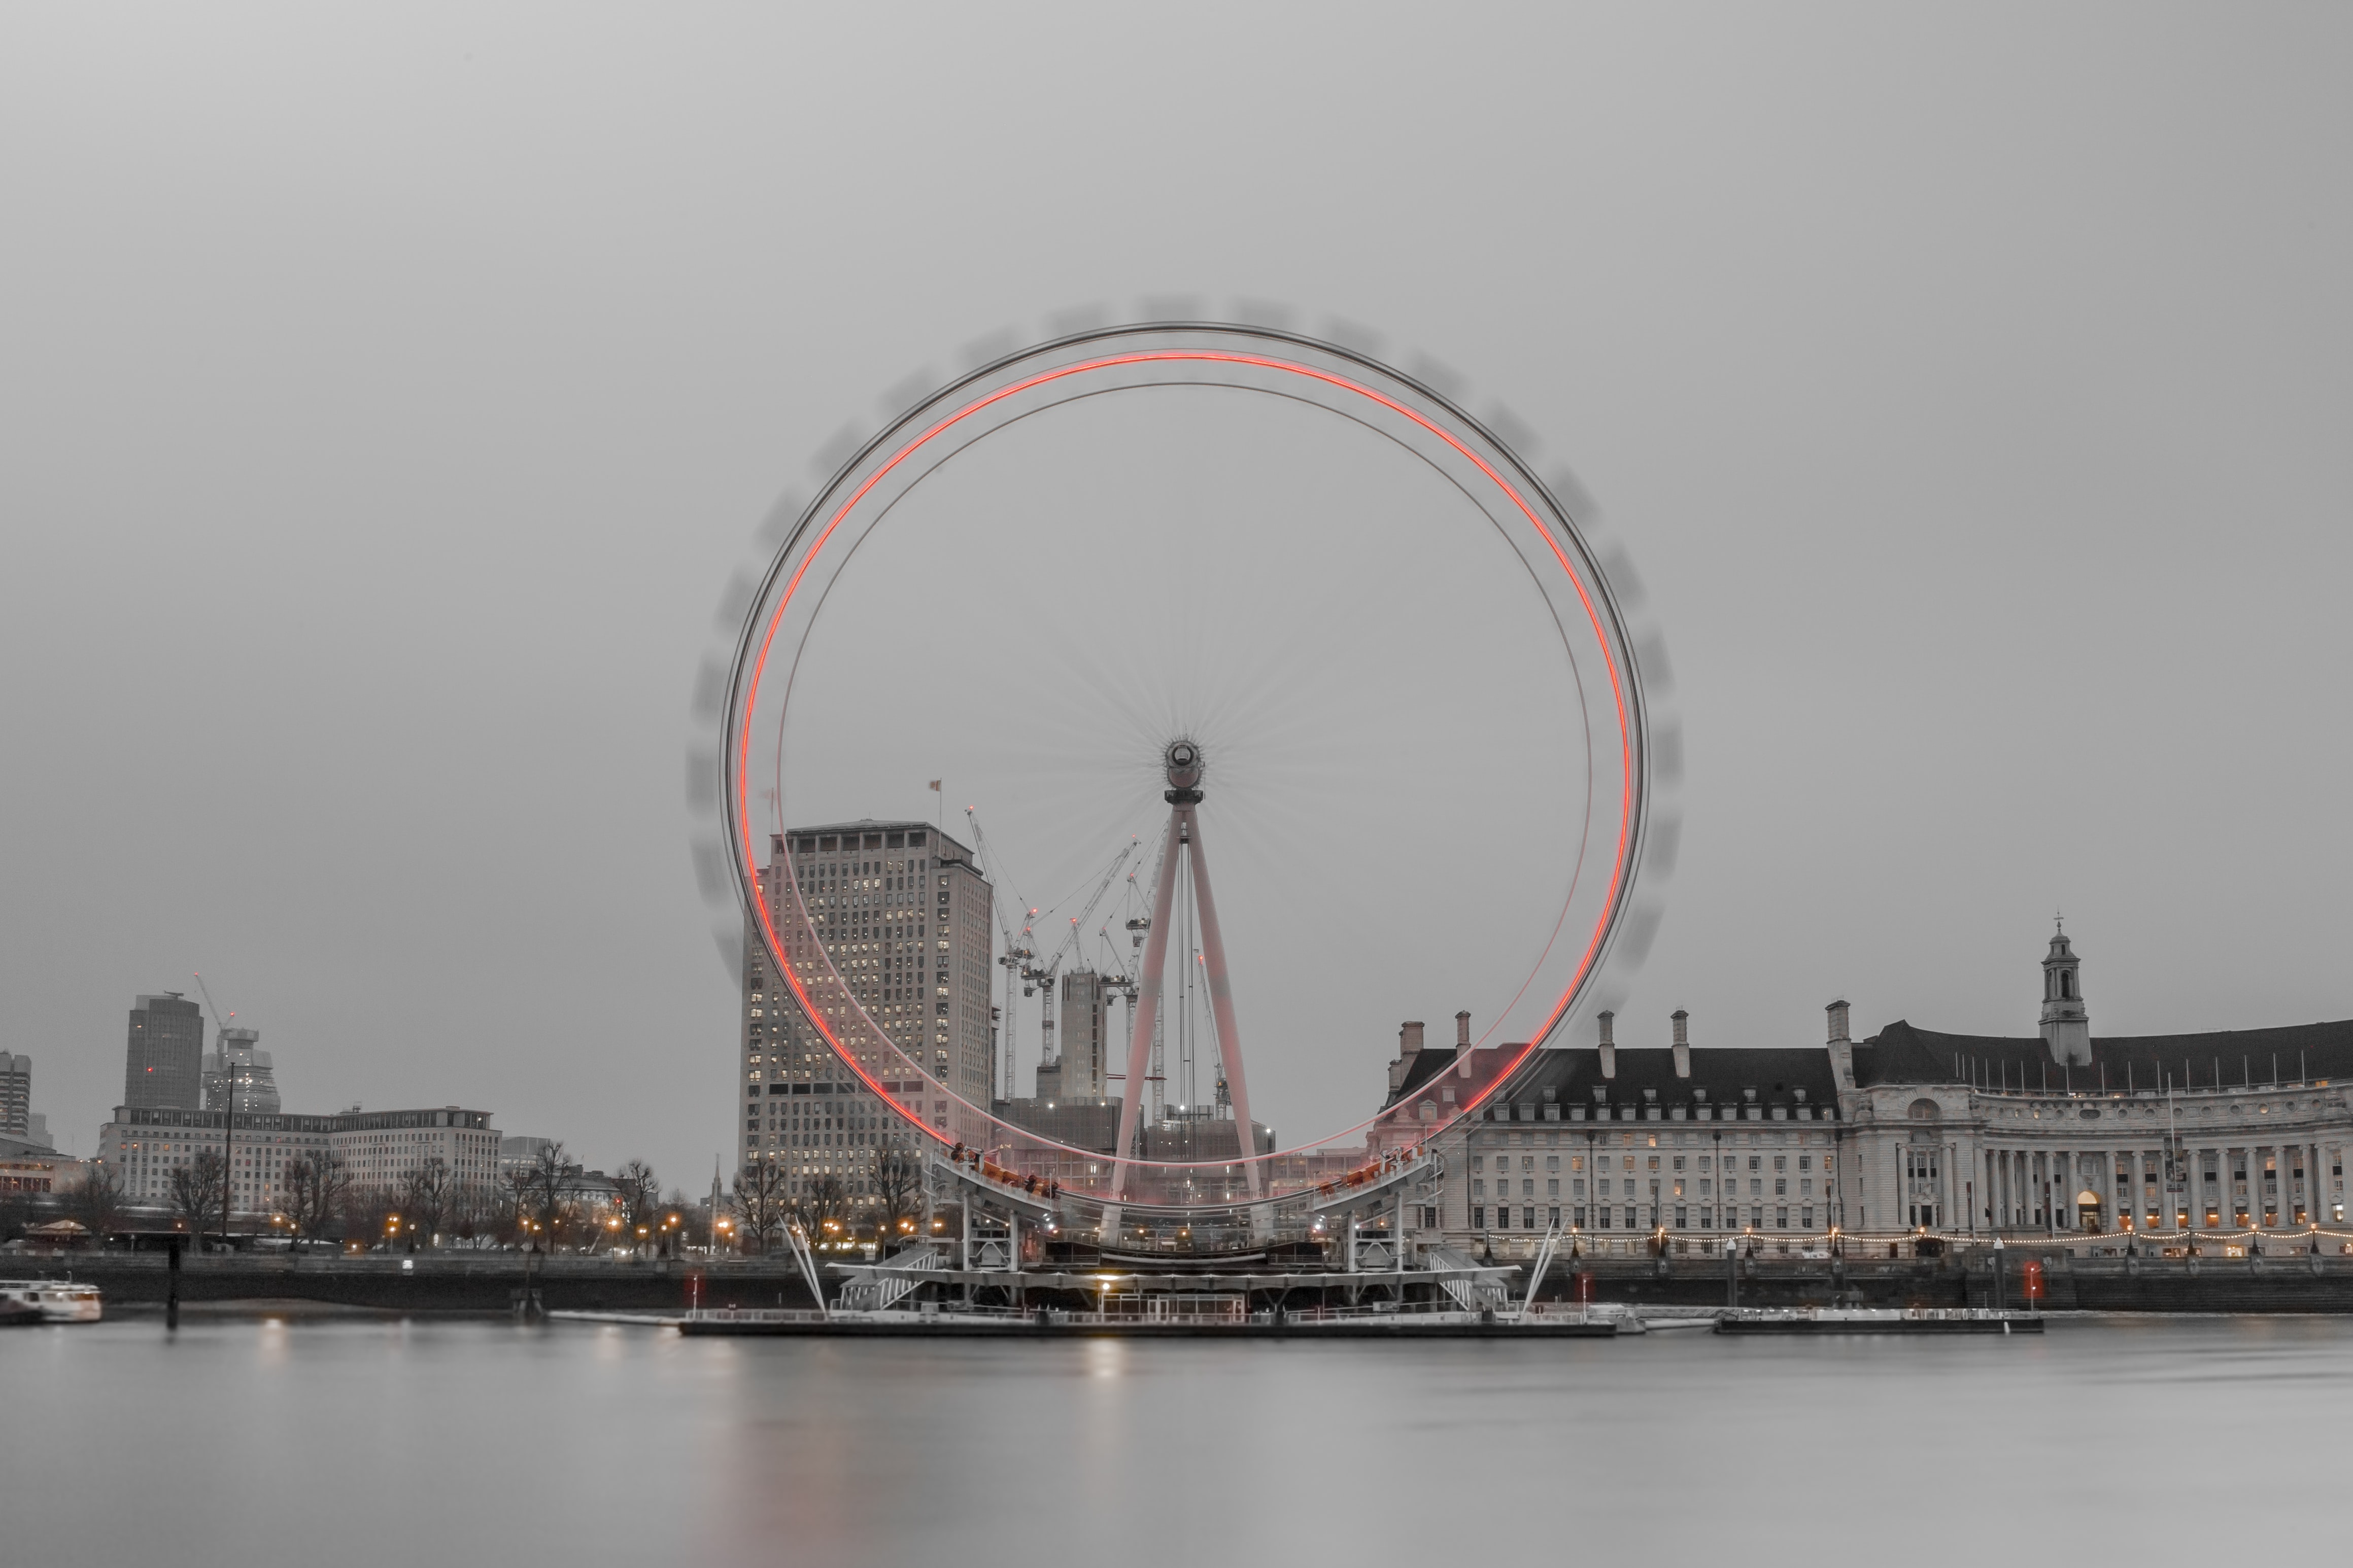 A waterfront background taken at dusk, featuring the London Eye ferris wheel